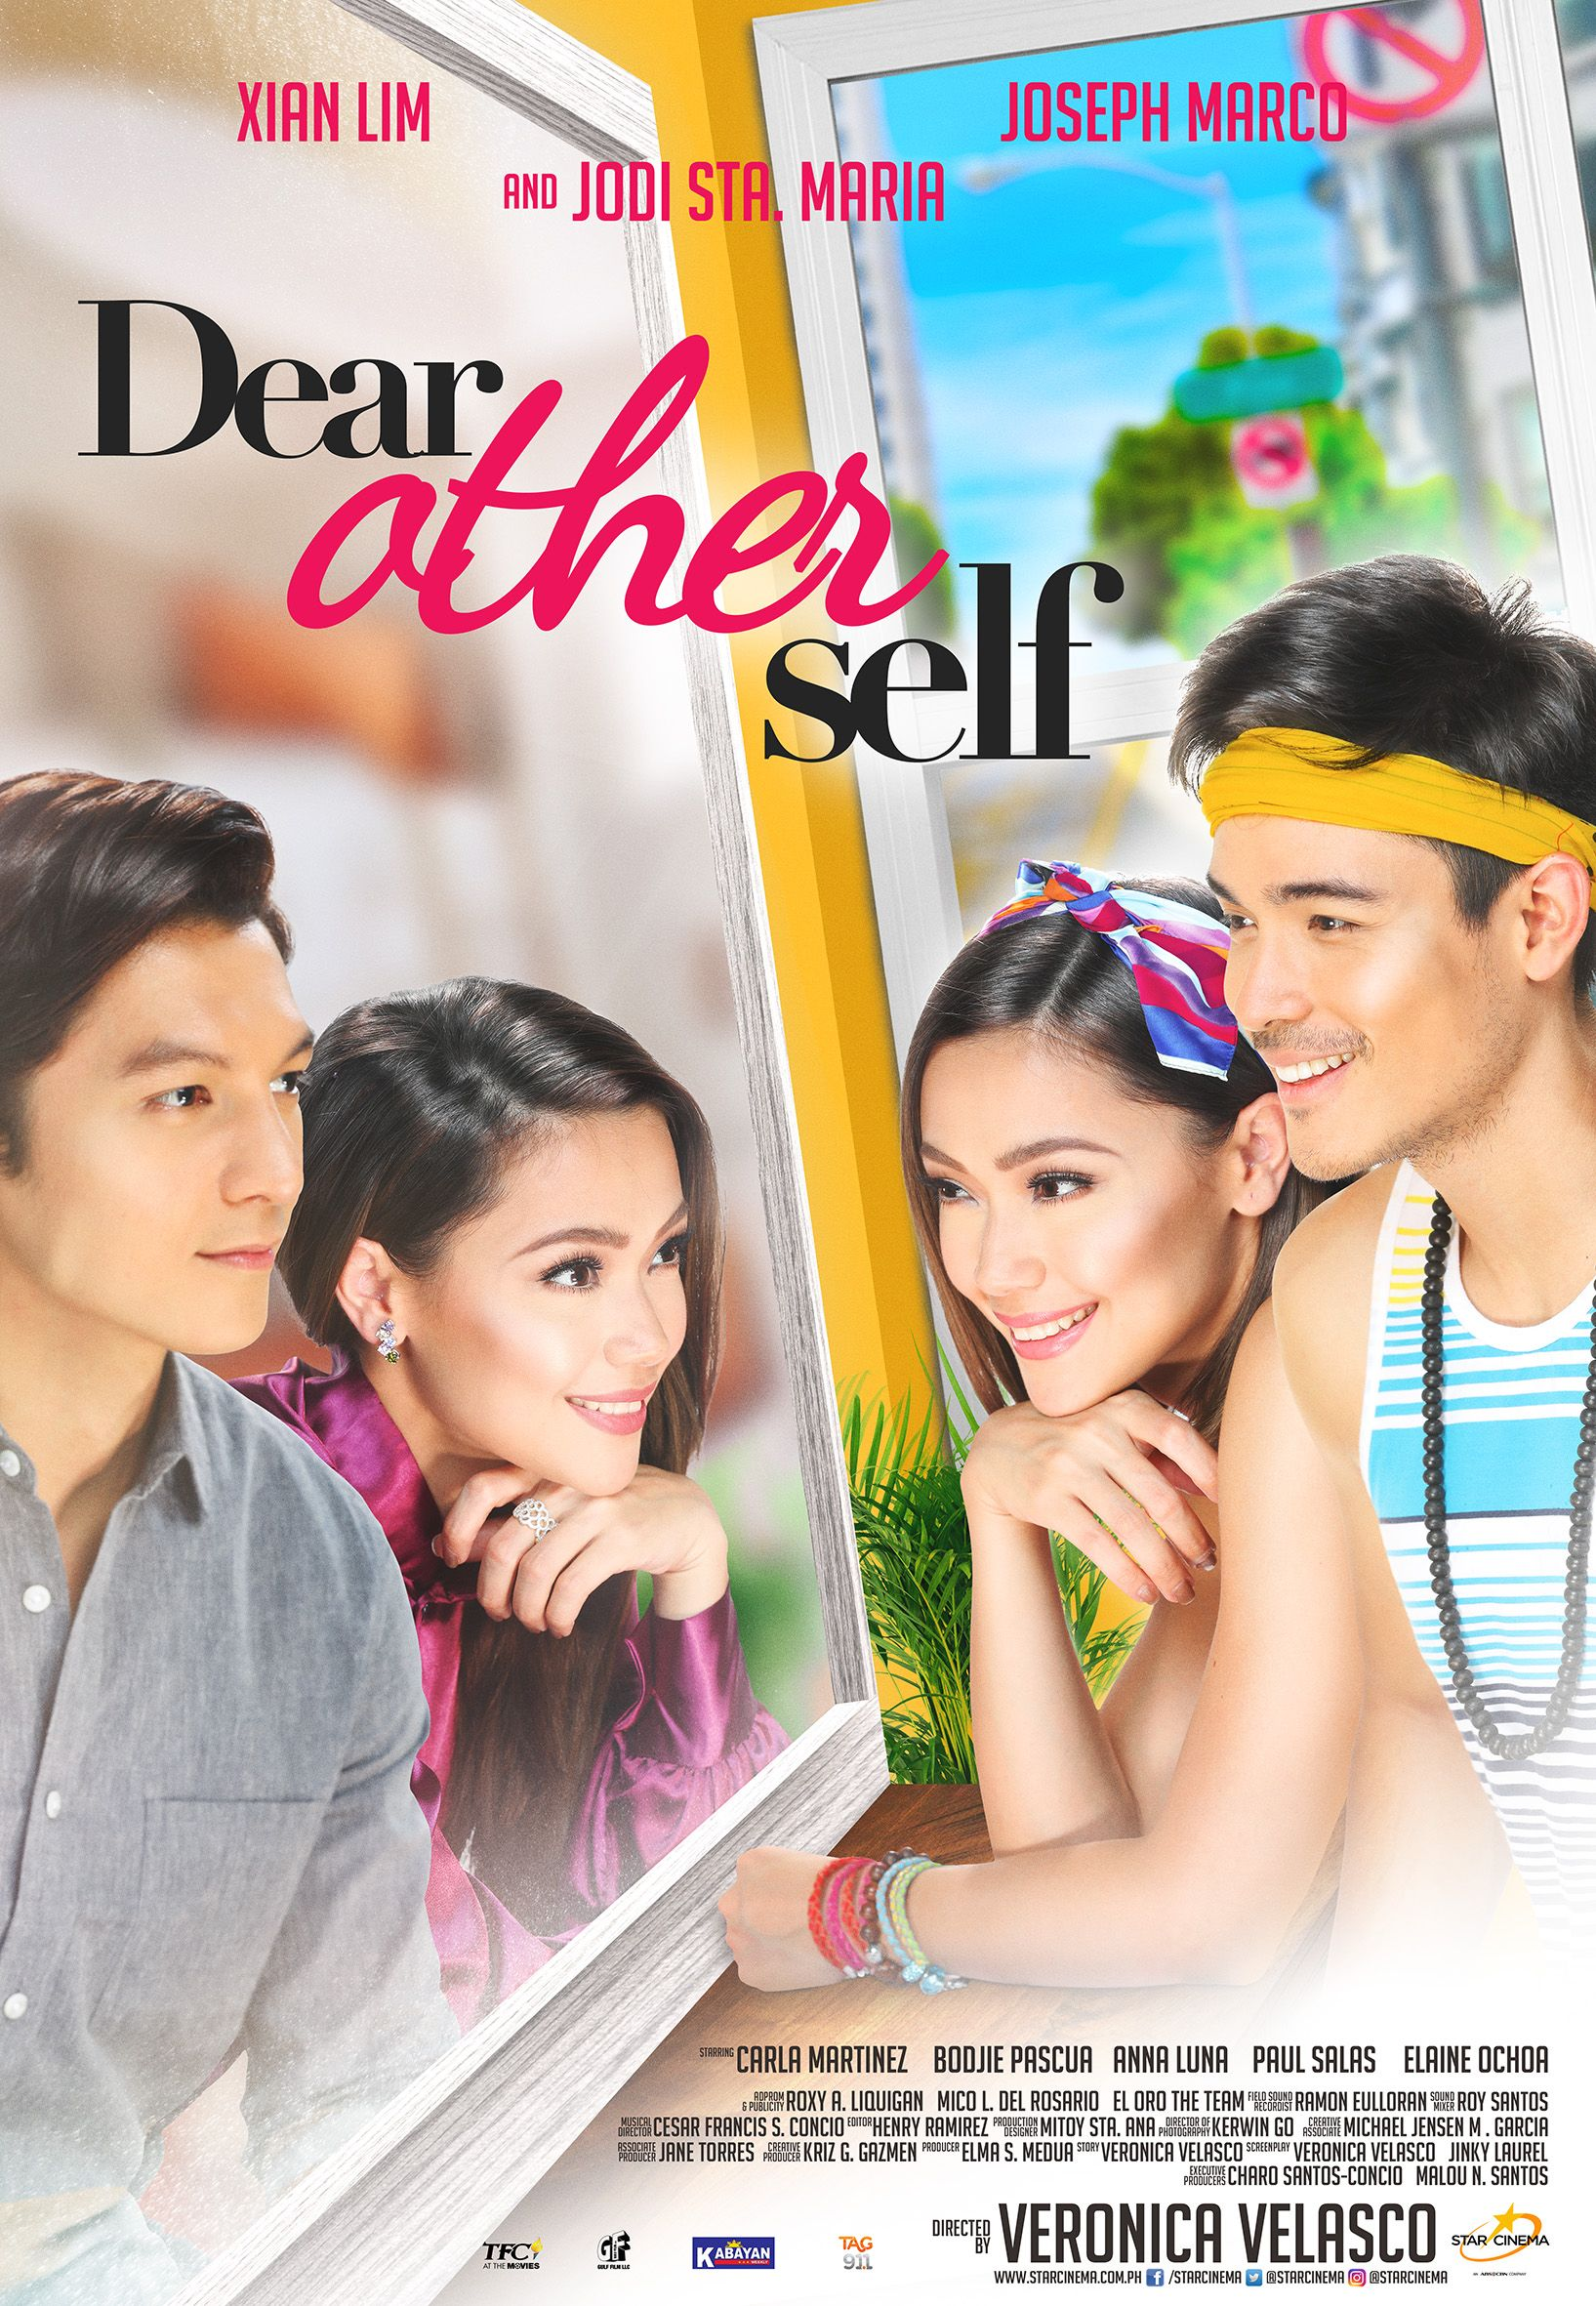 Dear Other Self 2017 Starring Jodi St Maria Joseph Marco Xian Lim Full Movies Online Free Movies Online Full Movies Online Free